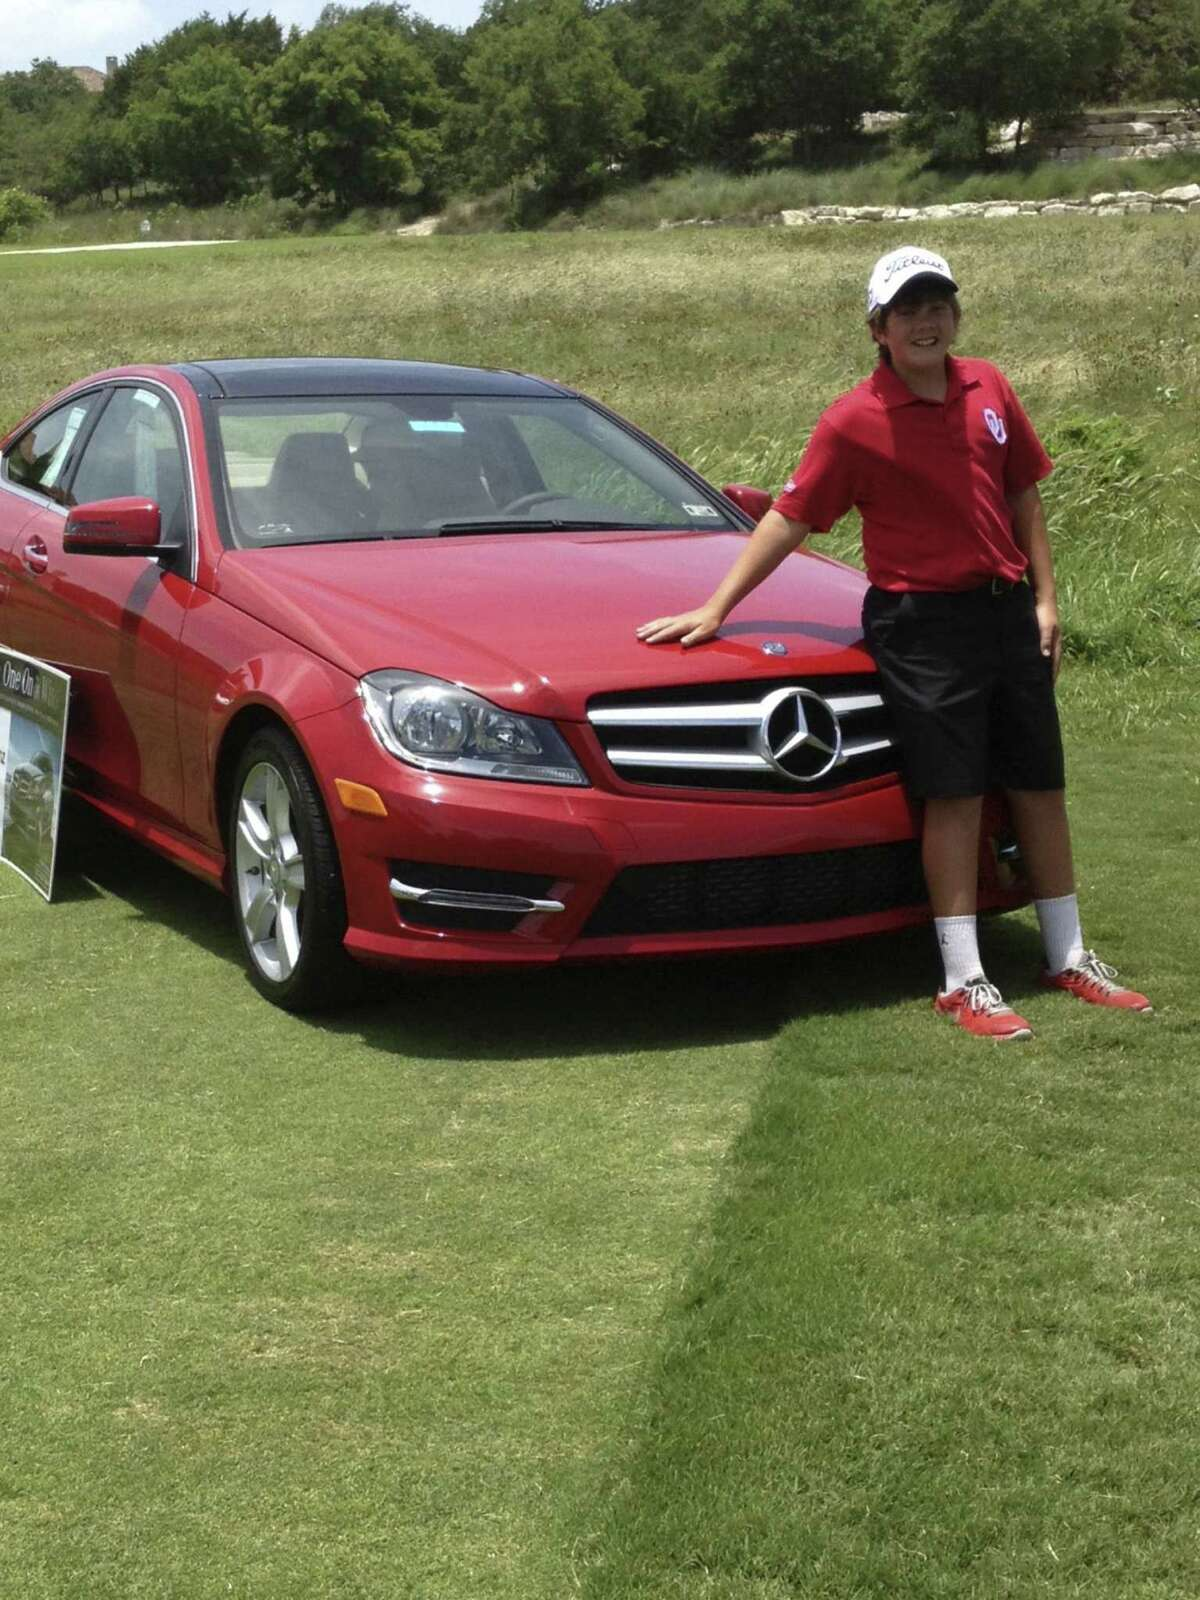 Besting legendary athletes at a charity golf event with a round that included a hole-in-one, Dalton Sisson's weekend was unforgettable even without the heady thought that he'd be the only Mercedes-Benz owner in his eighth-grade class.